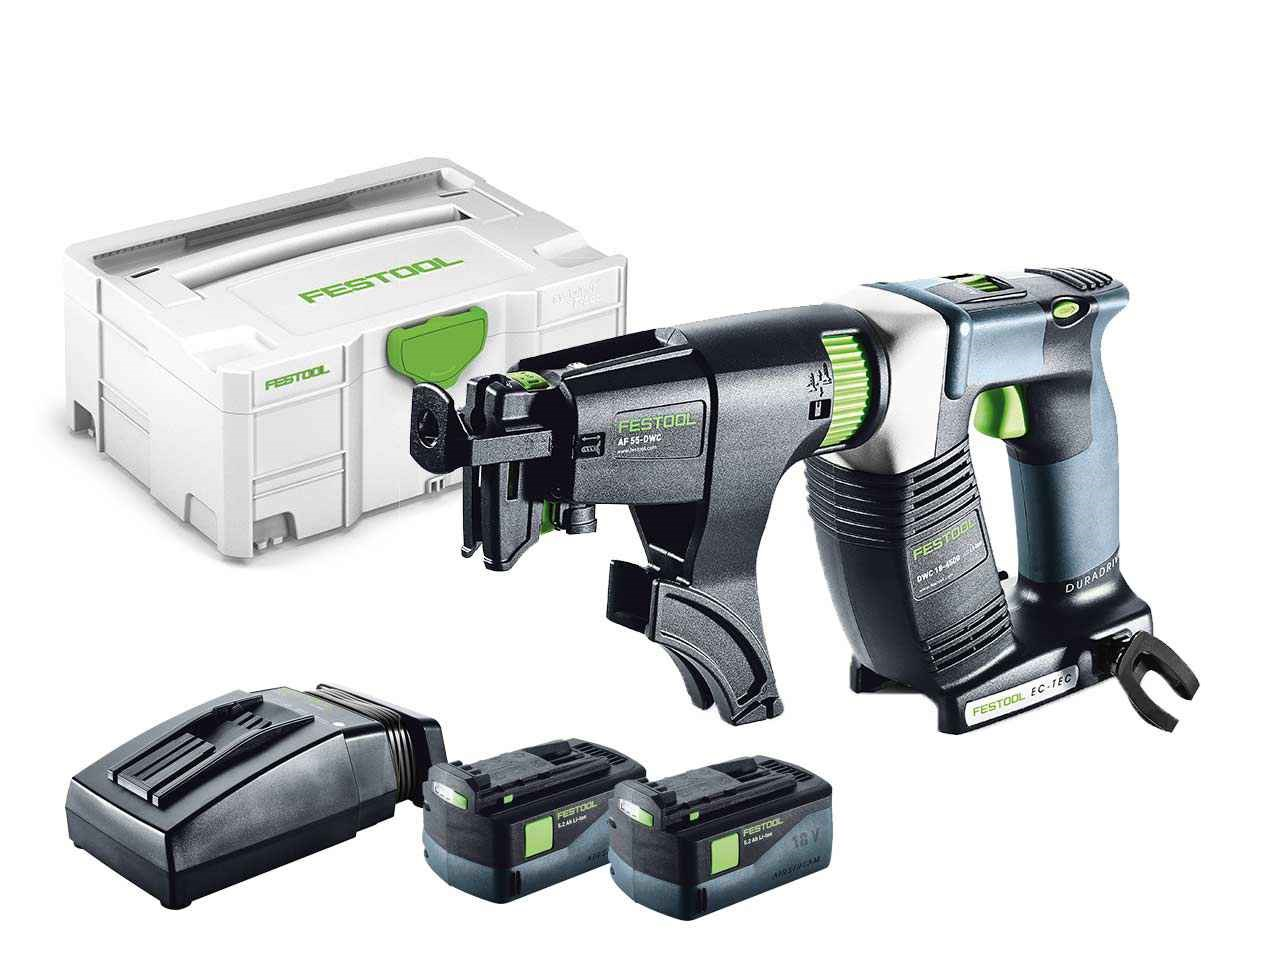 festool dwc 18 4500 li 5 2 plus 18v drywall screwdriver systainer 2. Black Bedroom Furniture Sets. Home Design Ideas